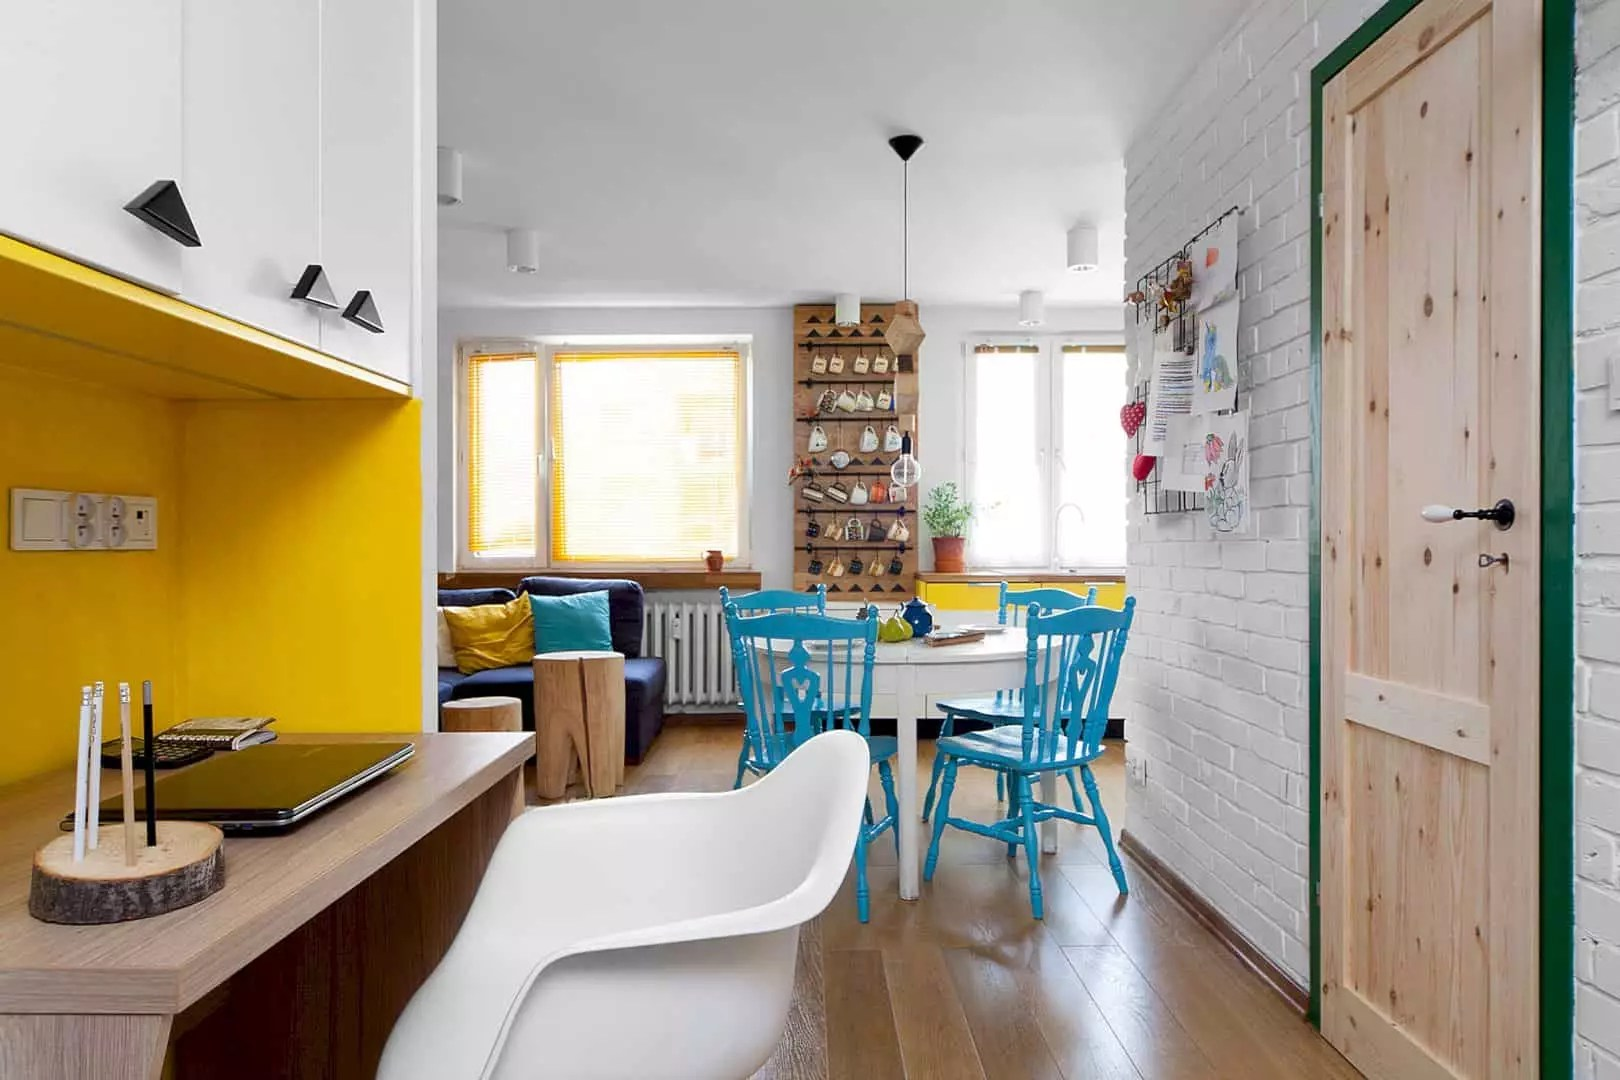 Mieszkanie Jaworzno: Minimalist Interior of A Beautiful House with Colorful and Rustic Design